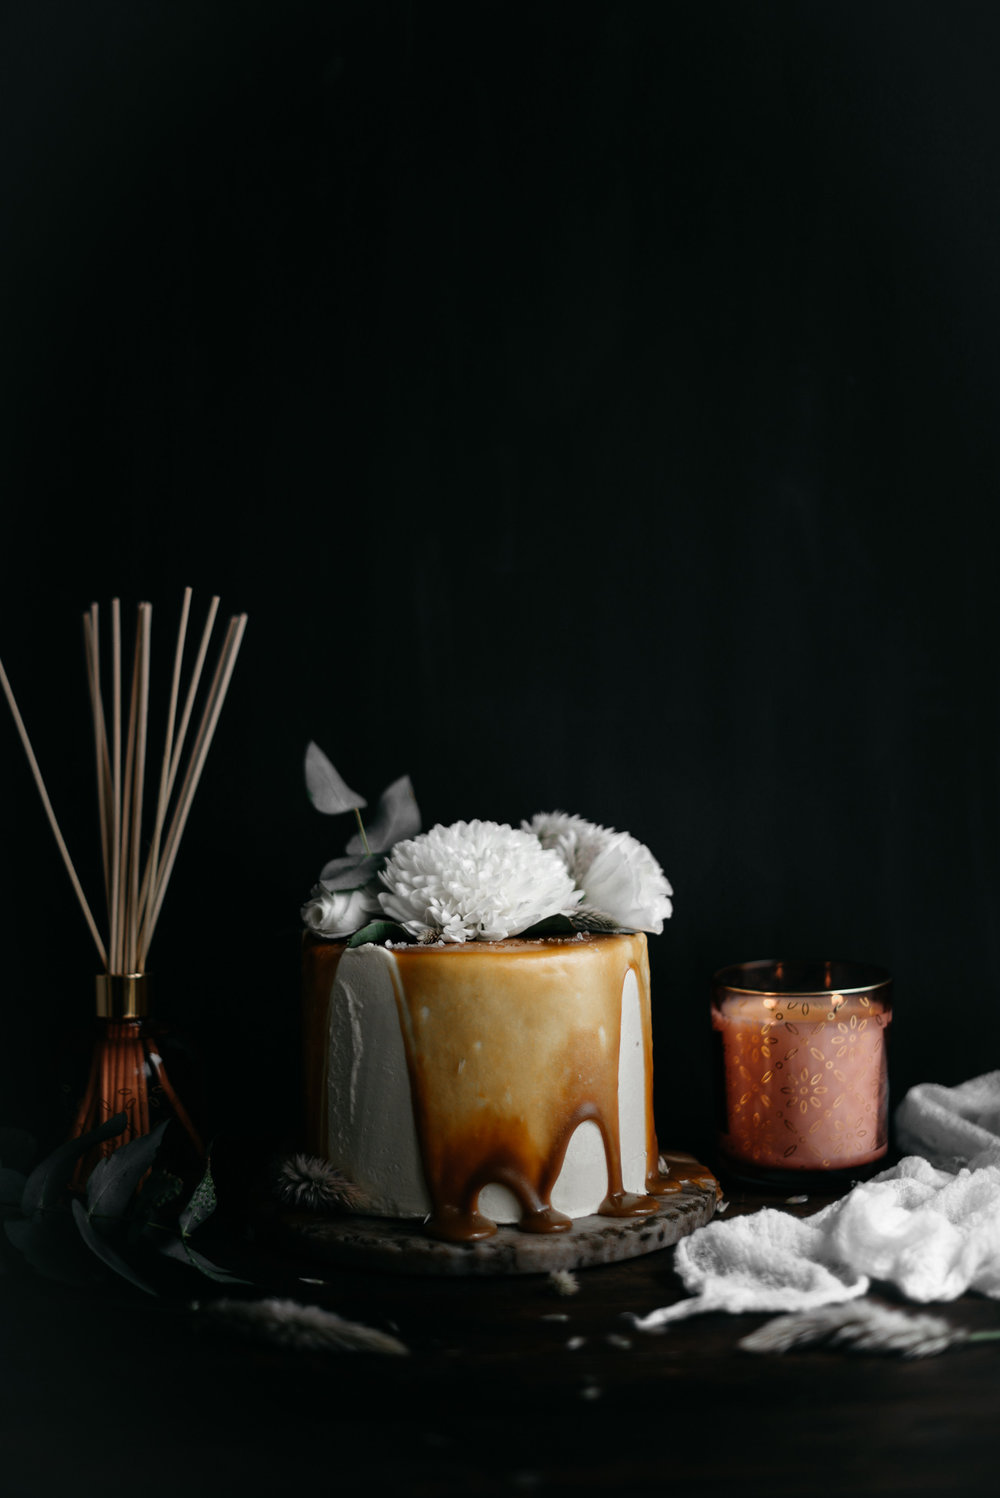 Italian-Orange-Blossom-and-Almond-Cake-with-Orange-Curd-Mascarpone-Swiss-Meringue-Buttercream-and-Fleur-d'Oranger-Caramel-2.jpg